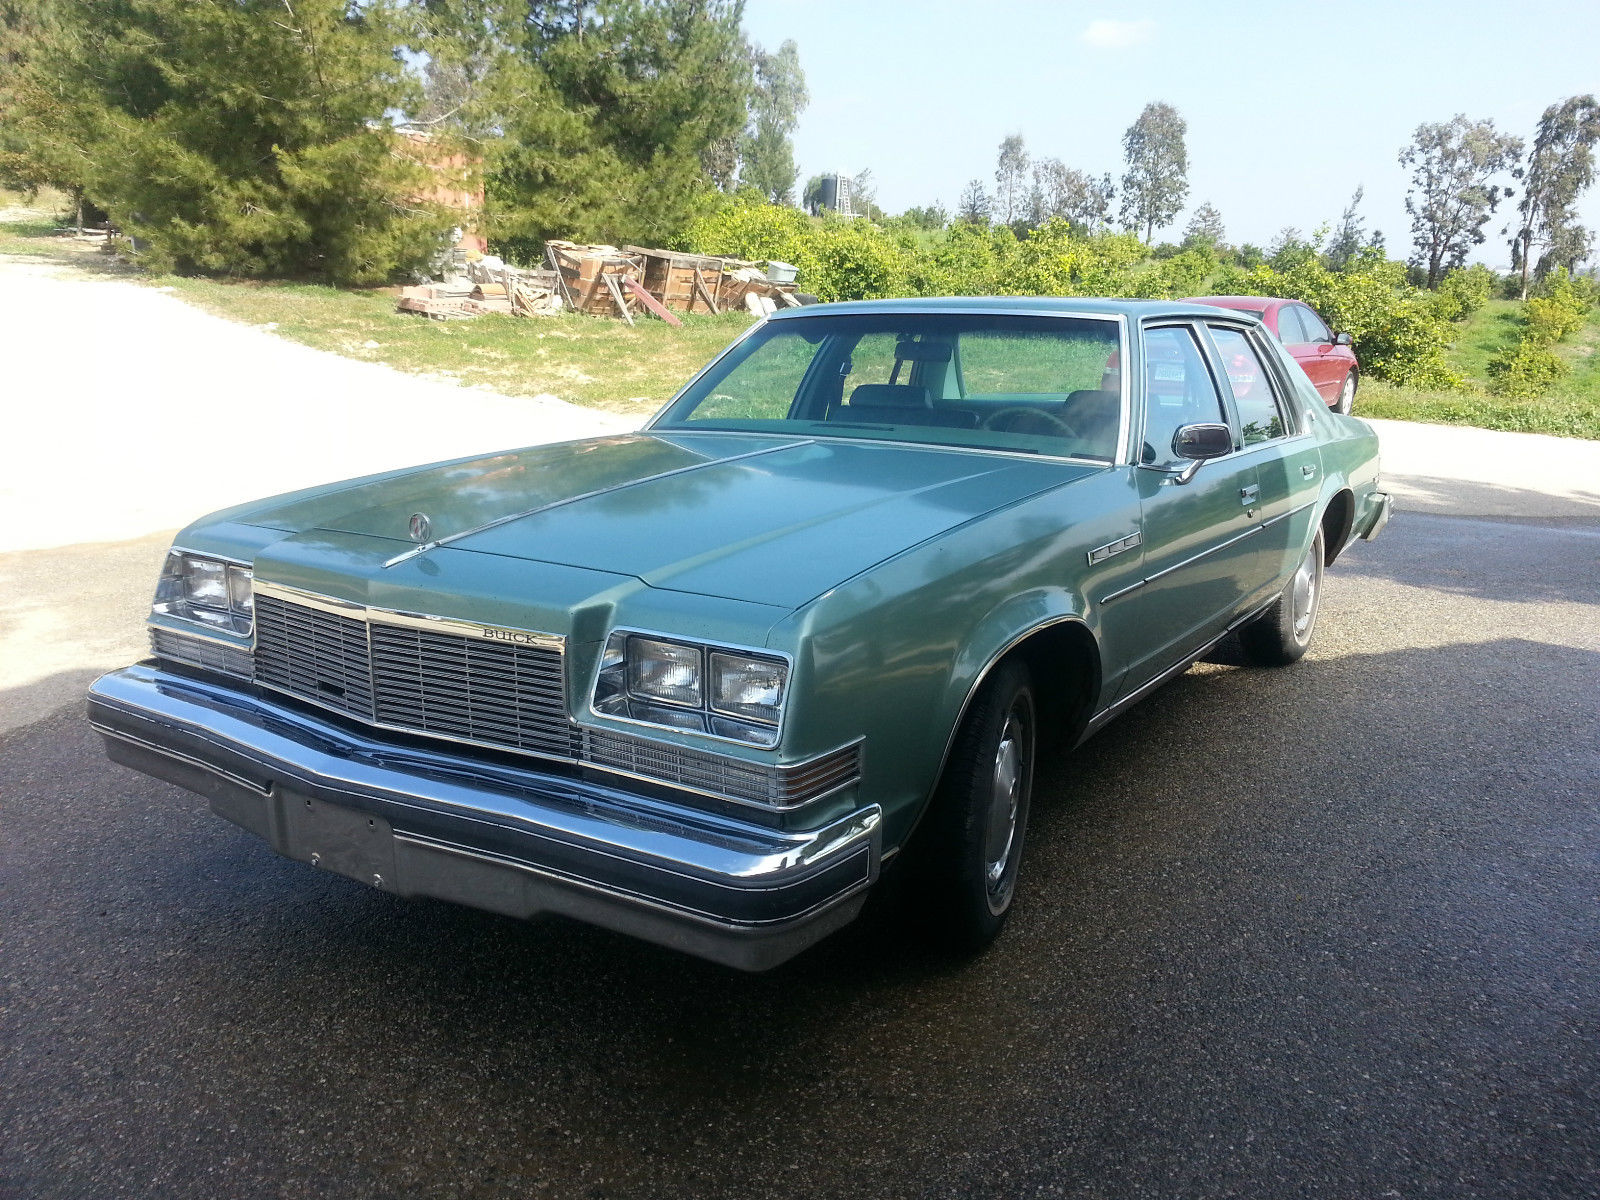 buick lesabre 1977 door sedan cars classic american puff v8 cream green